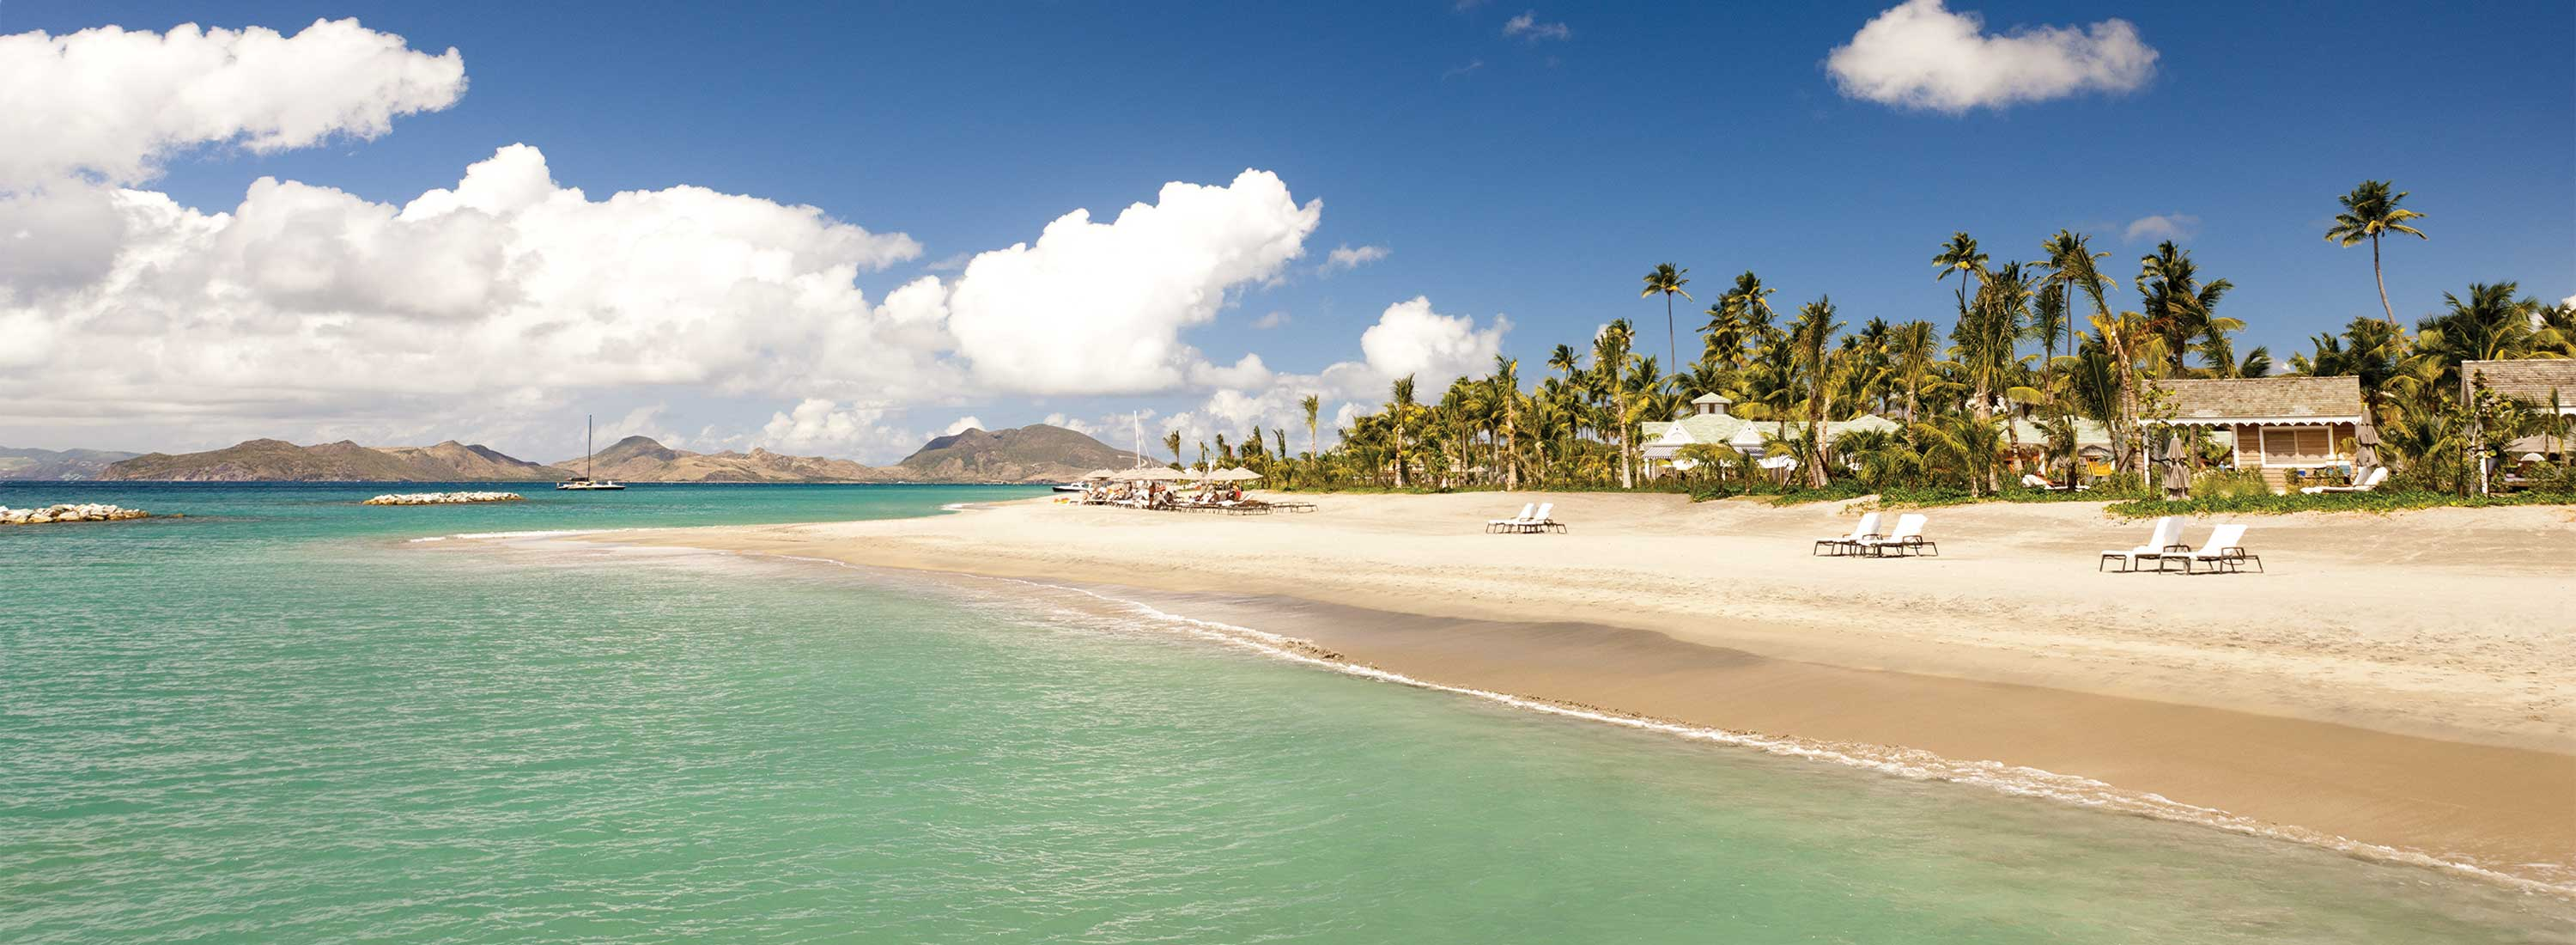 Windward Beach South Nevis, St. Kitts & Nevis Vacations